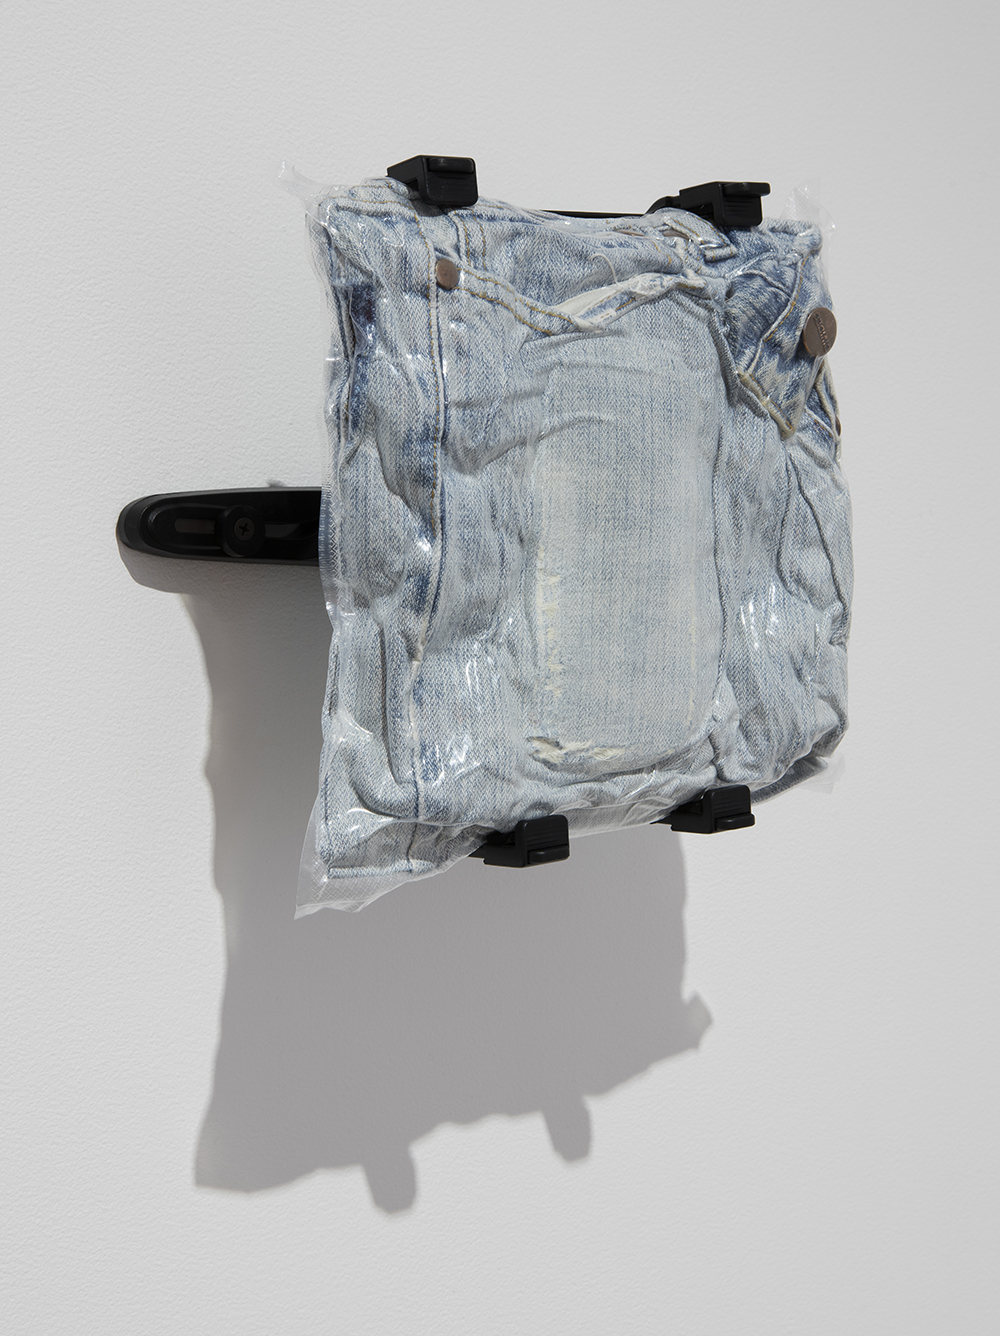 <em>Denim #4</em>, 2017. Vacuum packed jeans, tablet wall mount, 9 1/2 x 10 x 5 1/2 inches